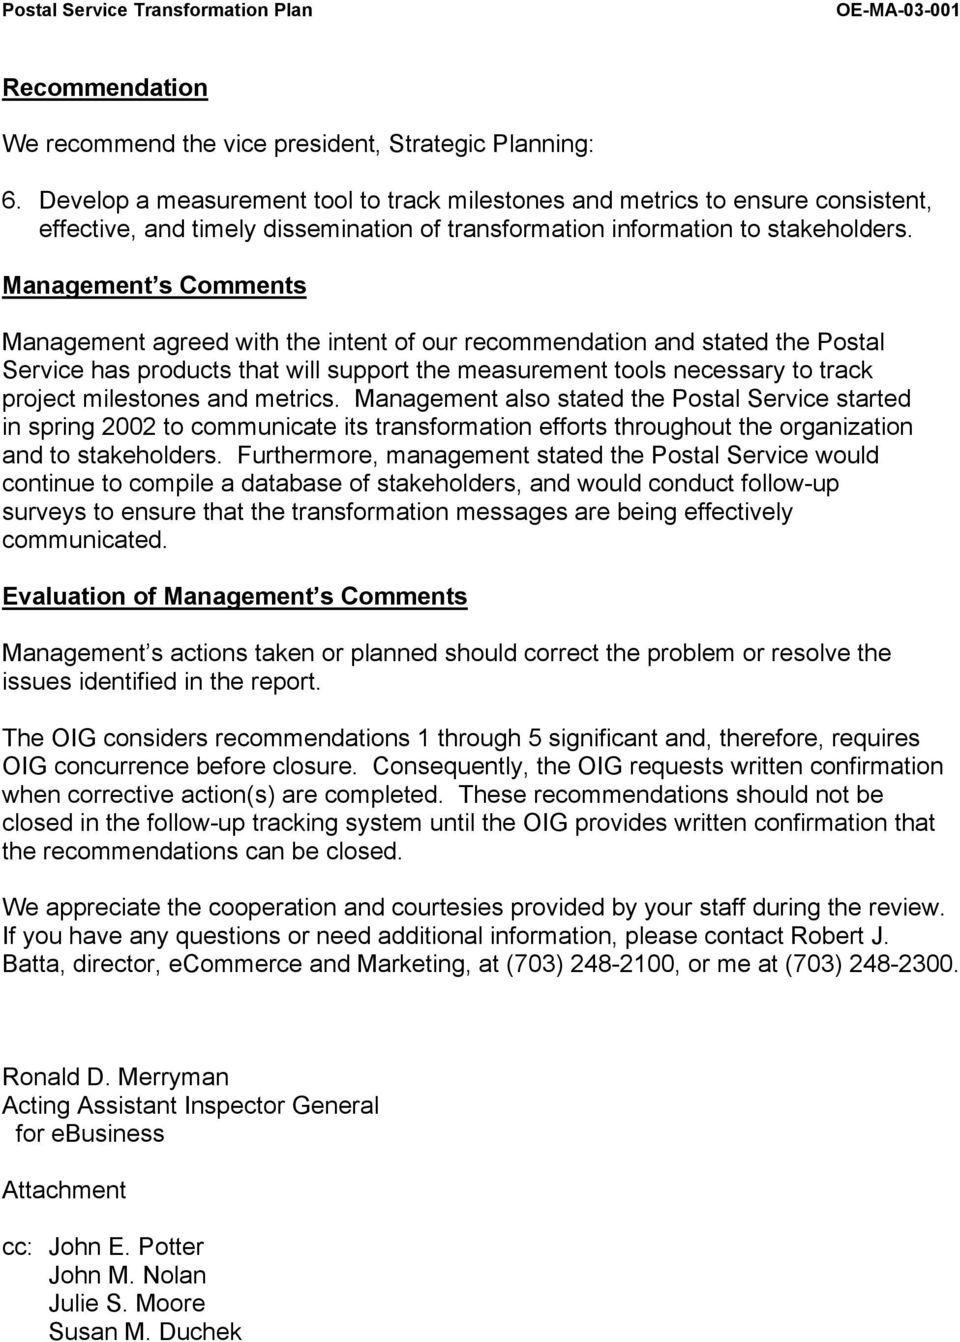 Management s Comments Management agreed with the intent of our recommendation and stated the Postal Service has products that will support the measurement tools necessary to track project milestones